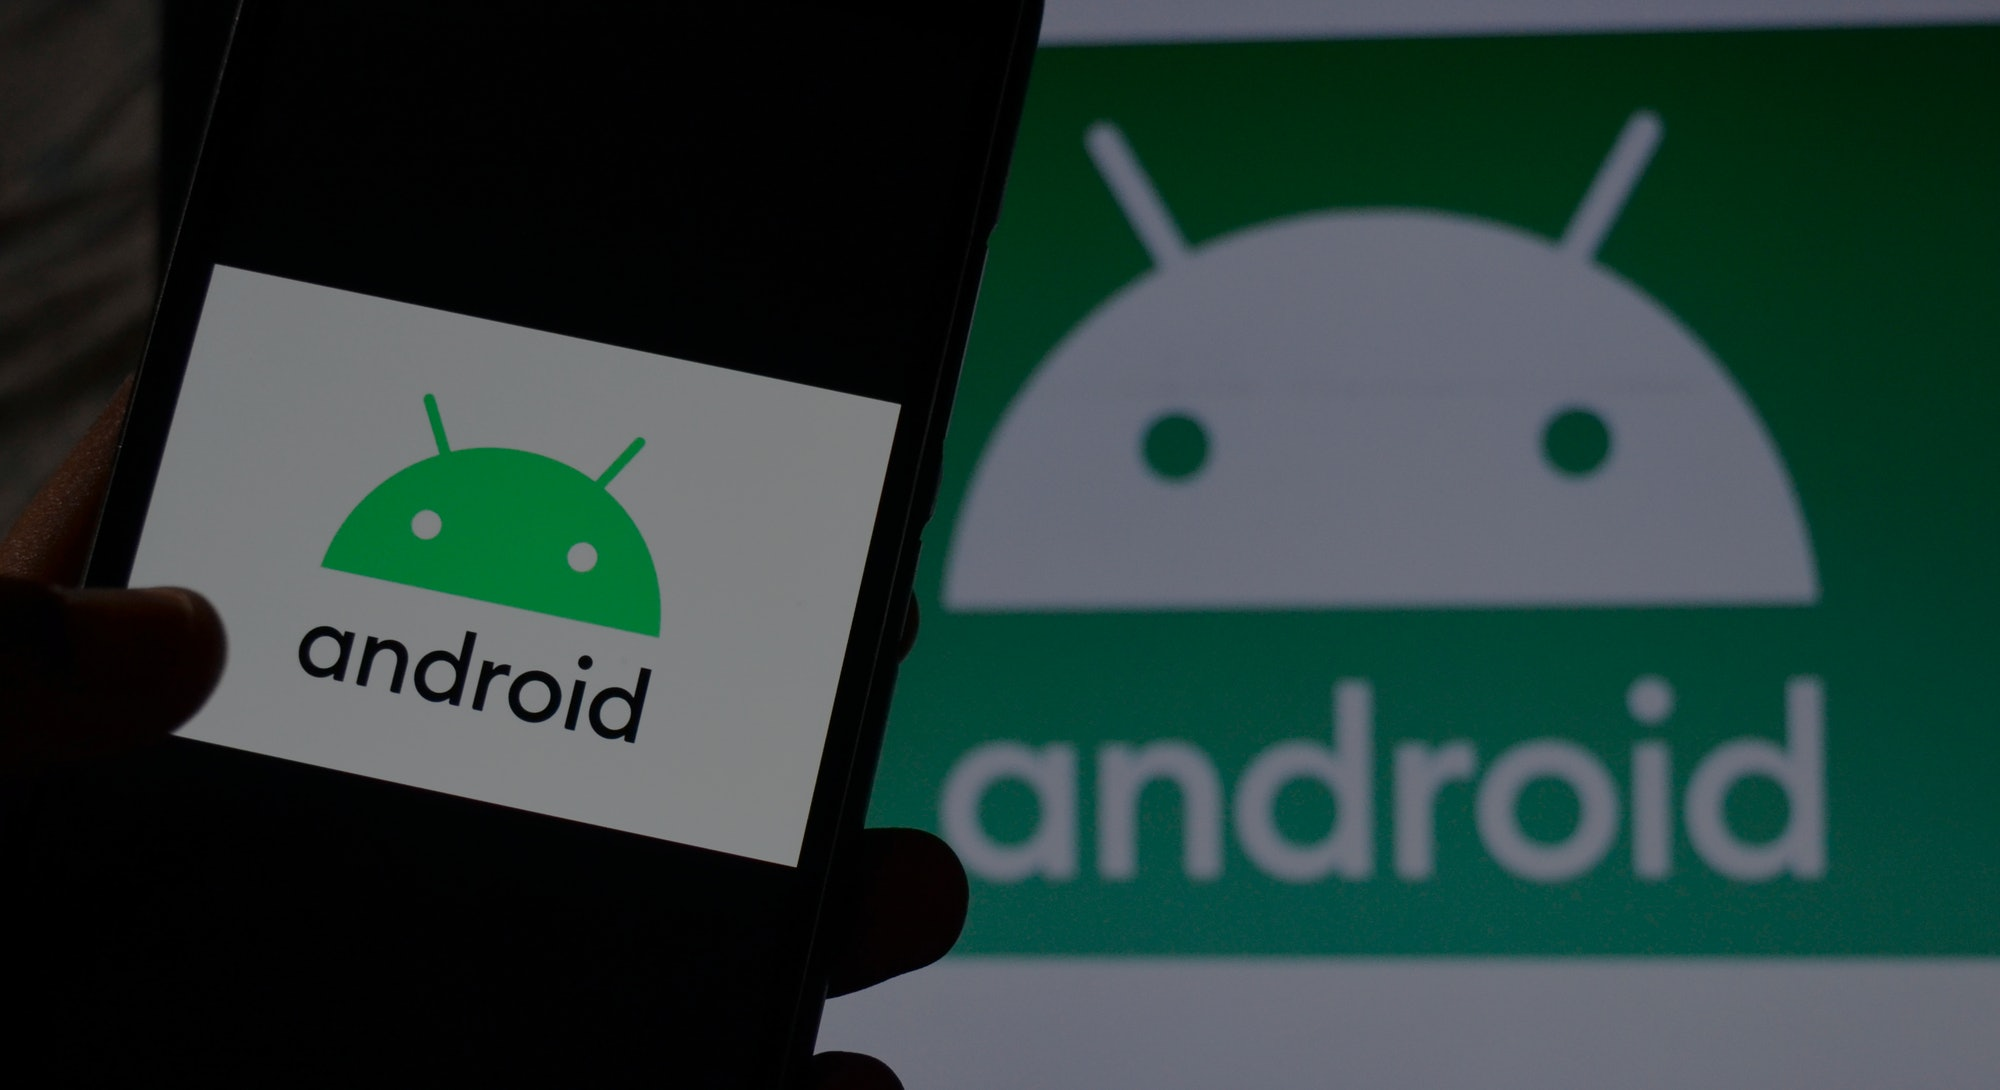 In this photo illustration Android 10 logo can be seen on a mobile screen as well as on a laptop screen, Kolkata, India, 24 August, 2019. Google announced on thursday that they will name Android Q as Android 10 as per media report.  (Photo by Indranil Aditya/NurPhoto via Getty Images)